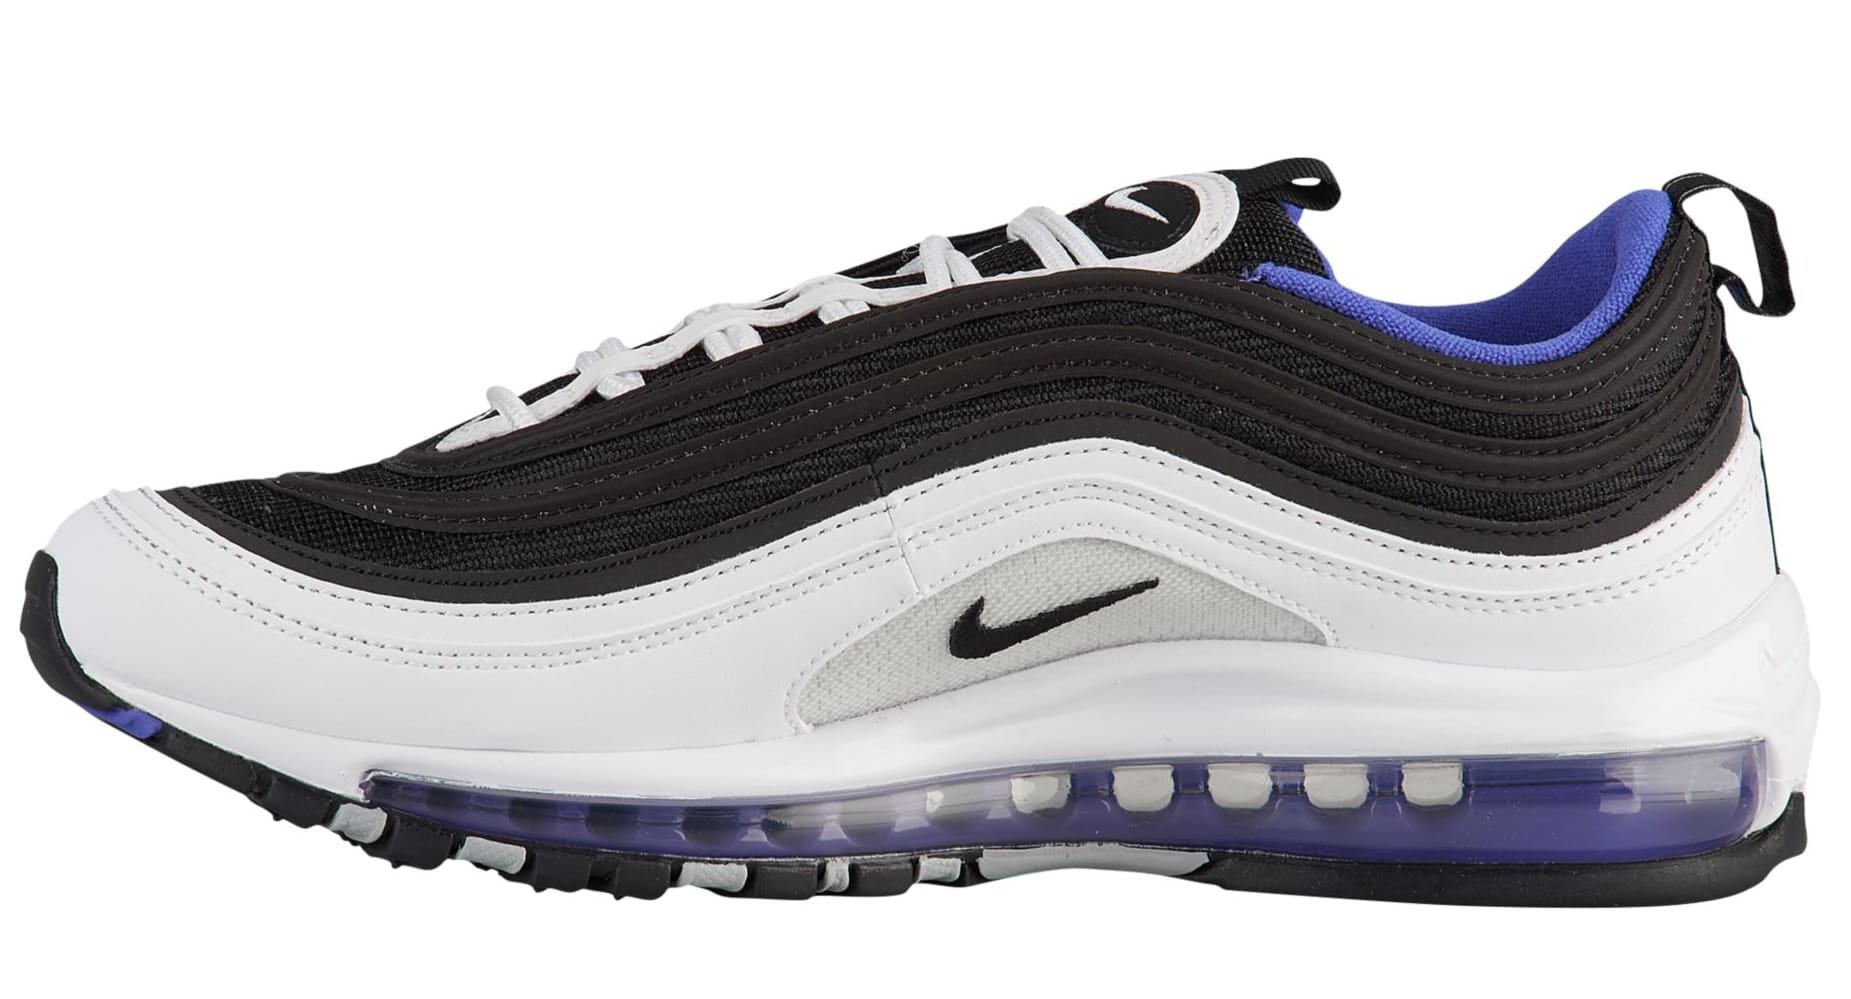 54de82082cee7 Available Now: Nike Air Max 97 Persian Violet • KicksOnFire.com